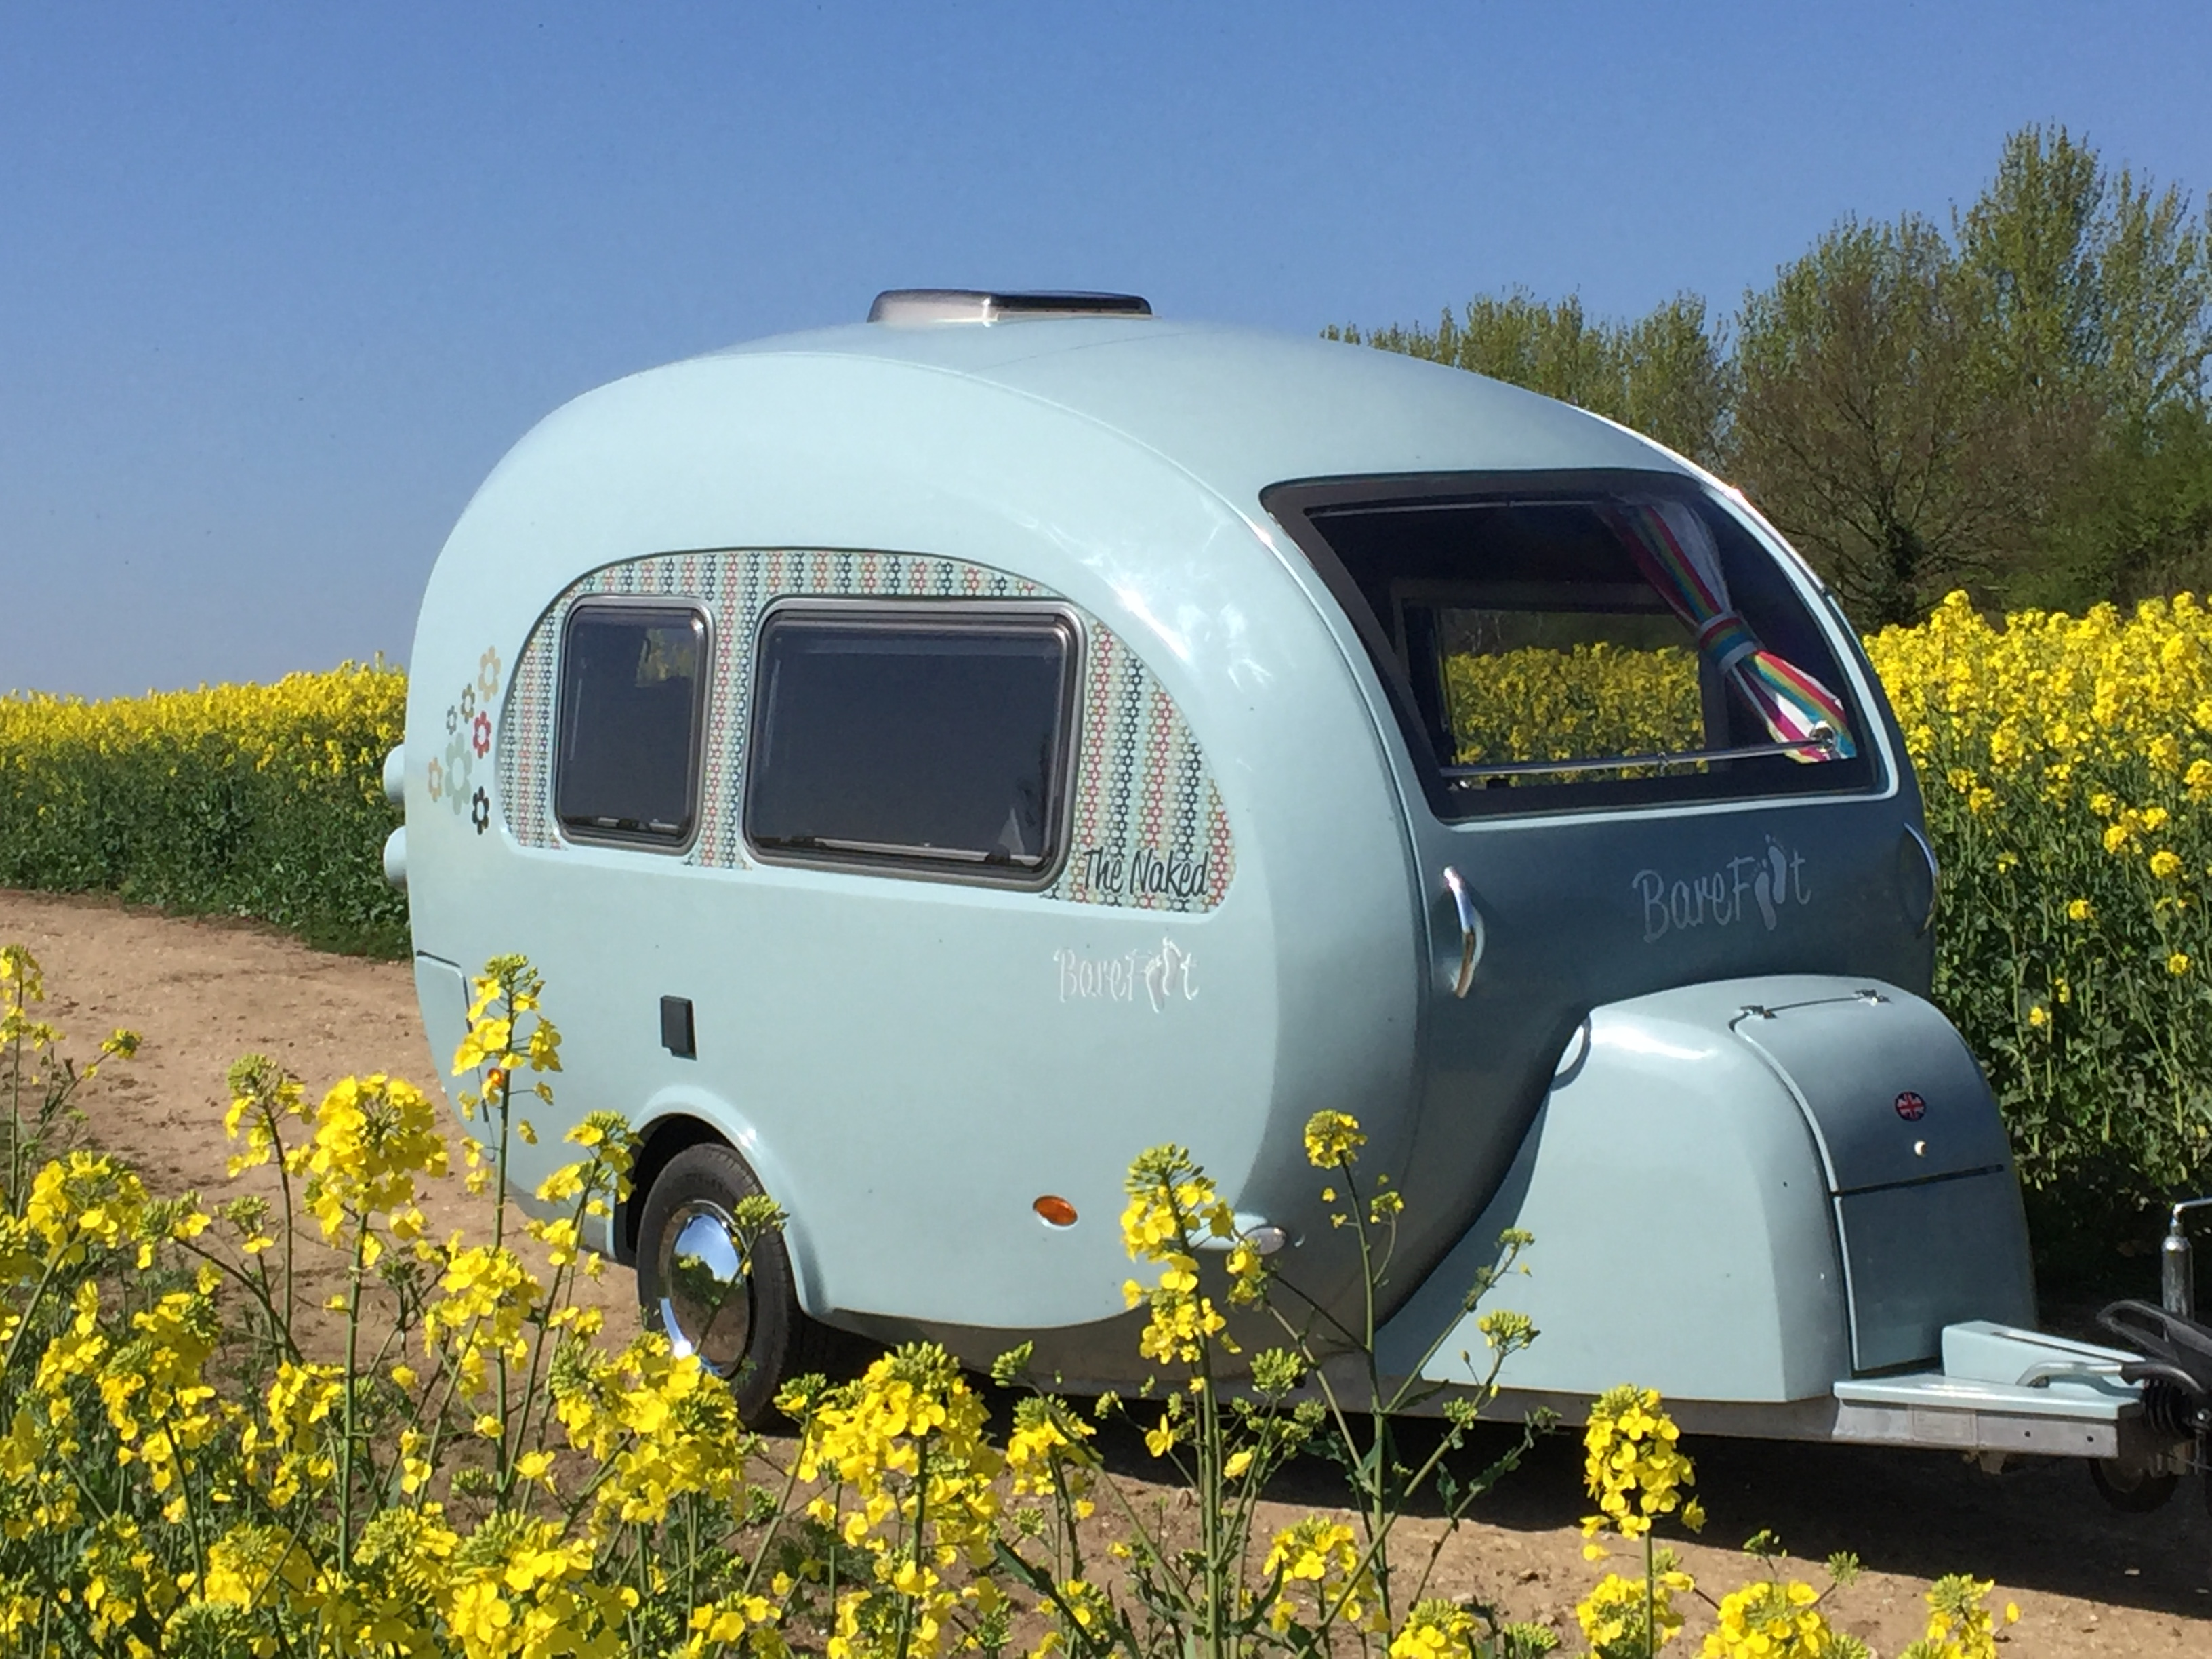 Retro-inspired camper trailer is coming to the U.S.